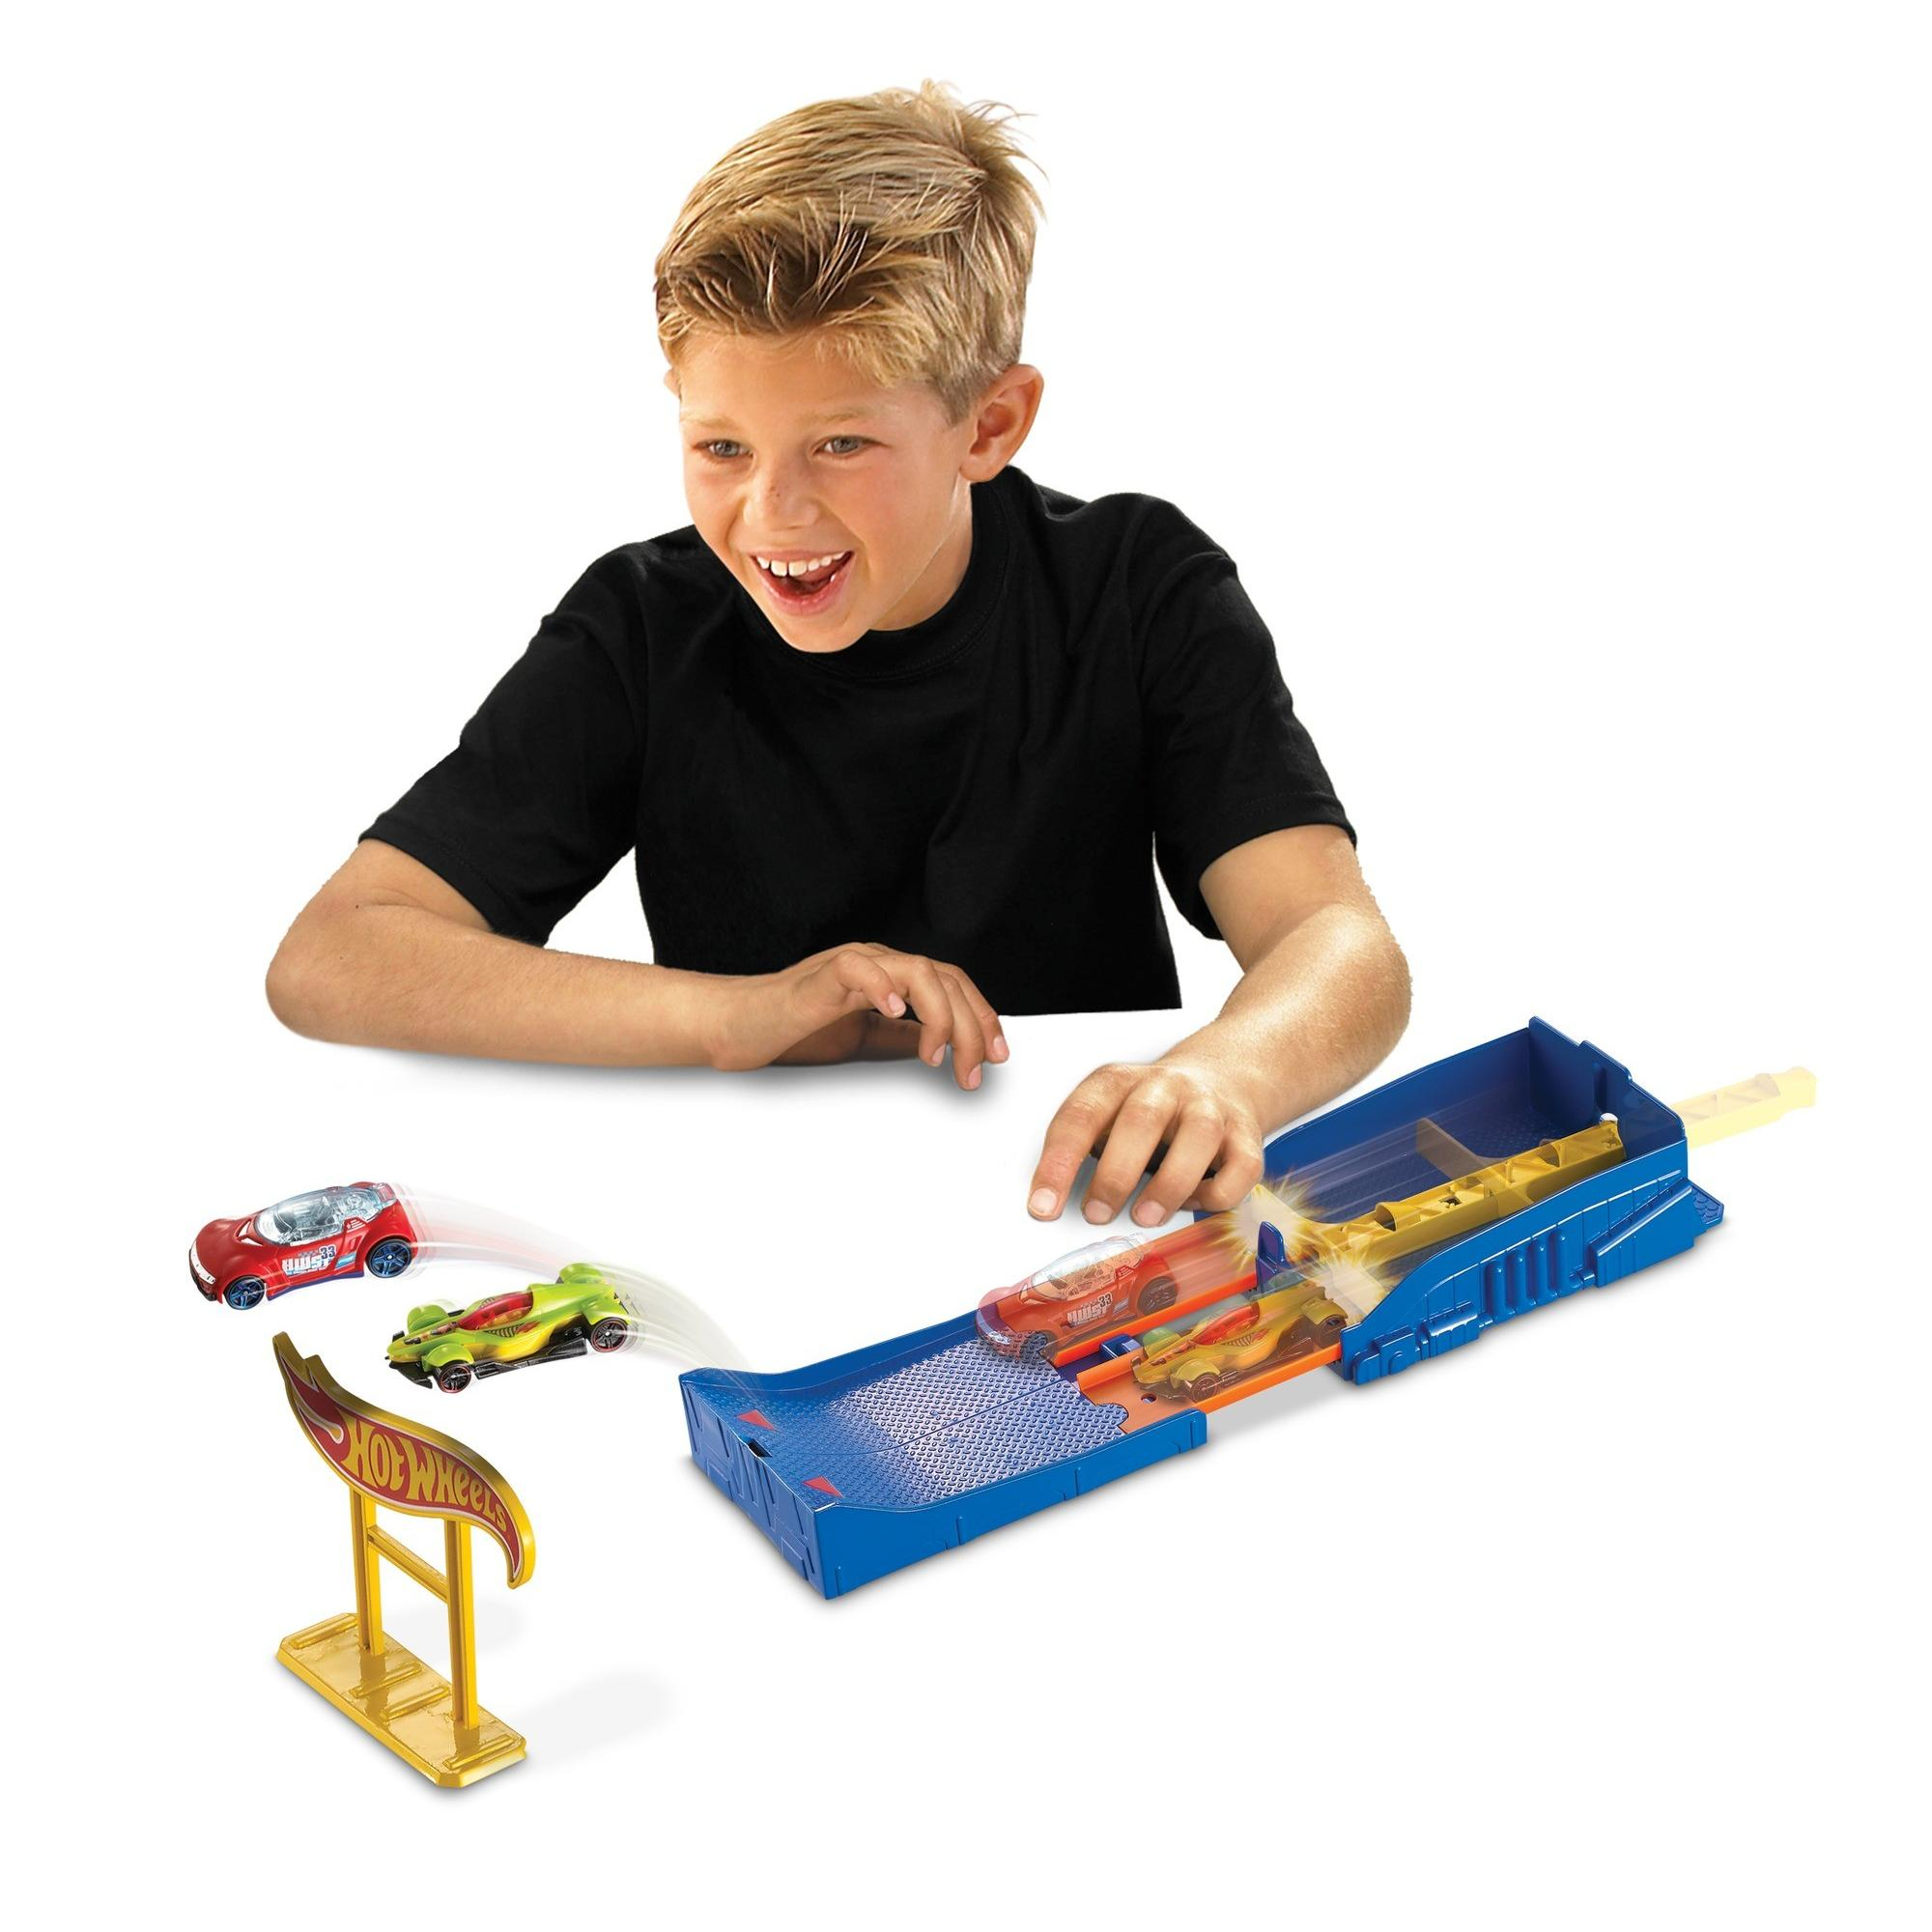 Hot Wheels Pocket Raceway Track Set by Mattel